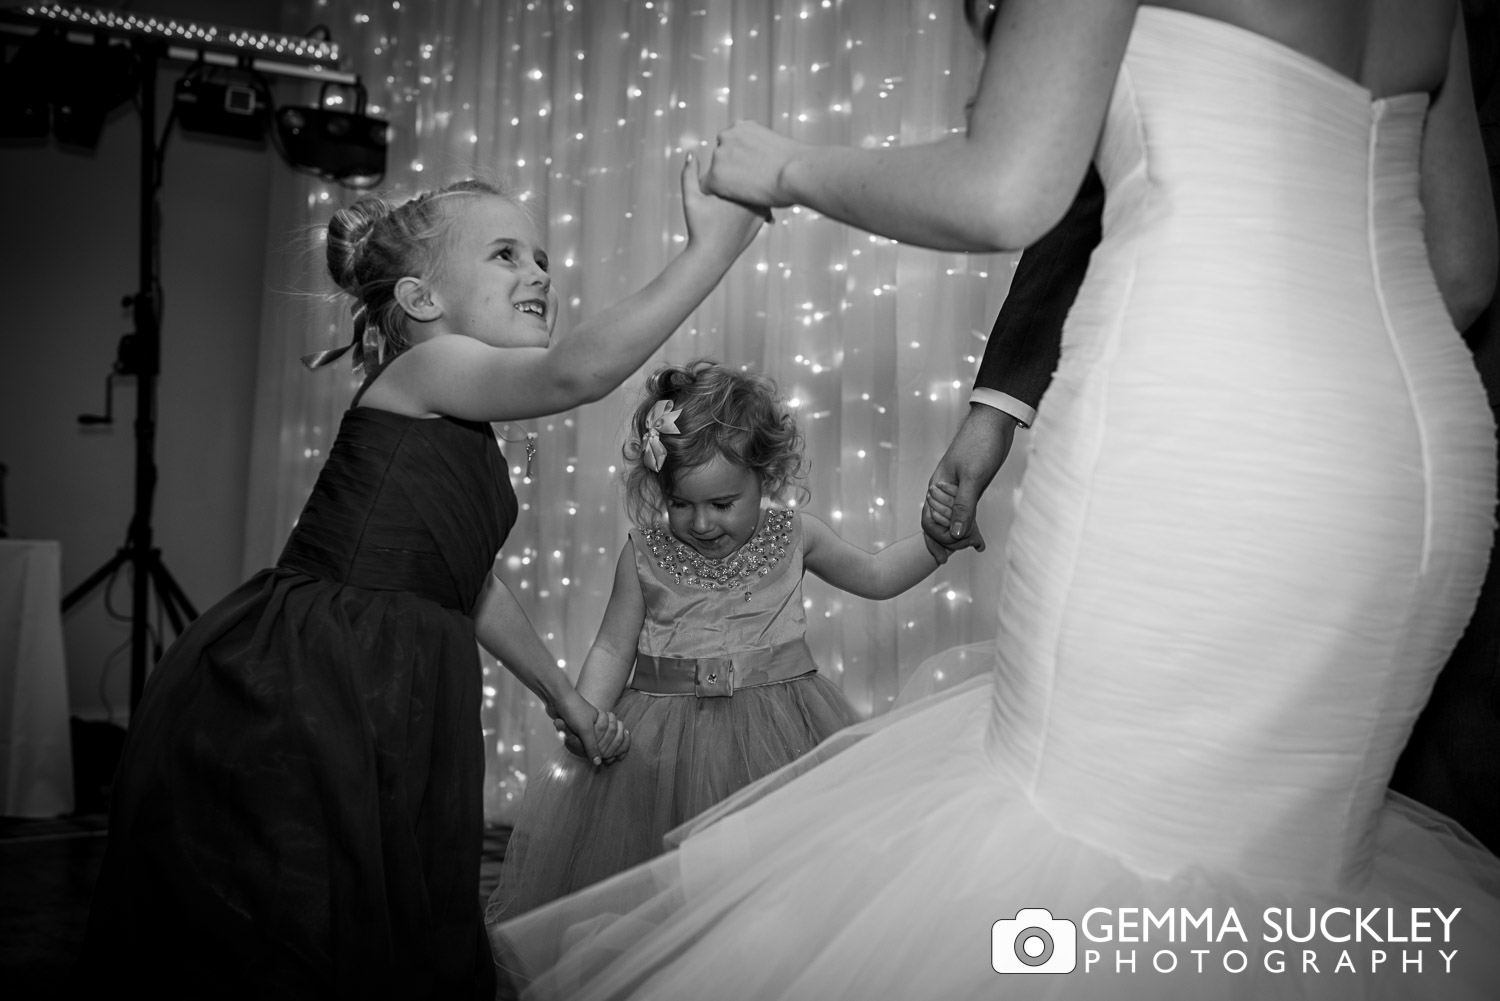 dancing bride and flower girl at Coniston hotel wedding reception